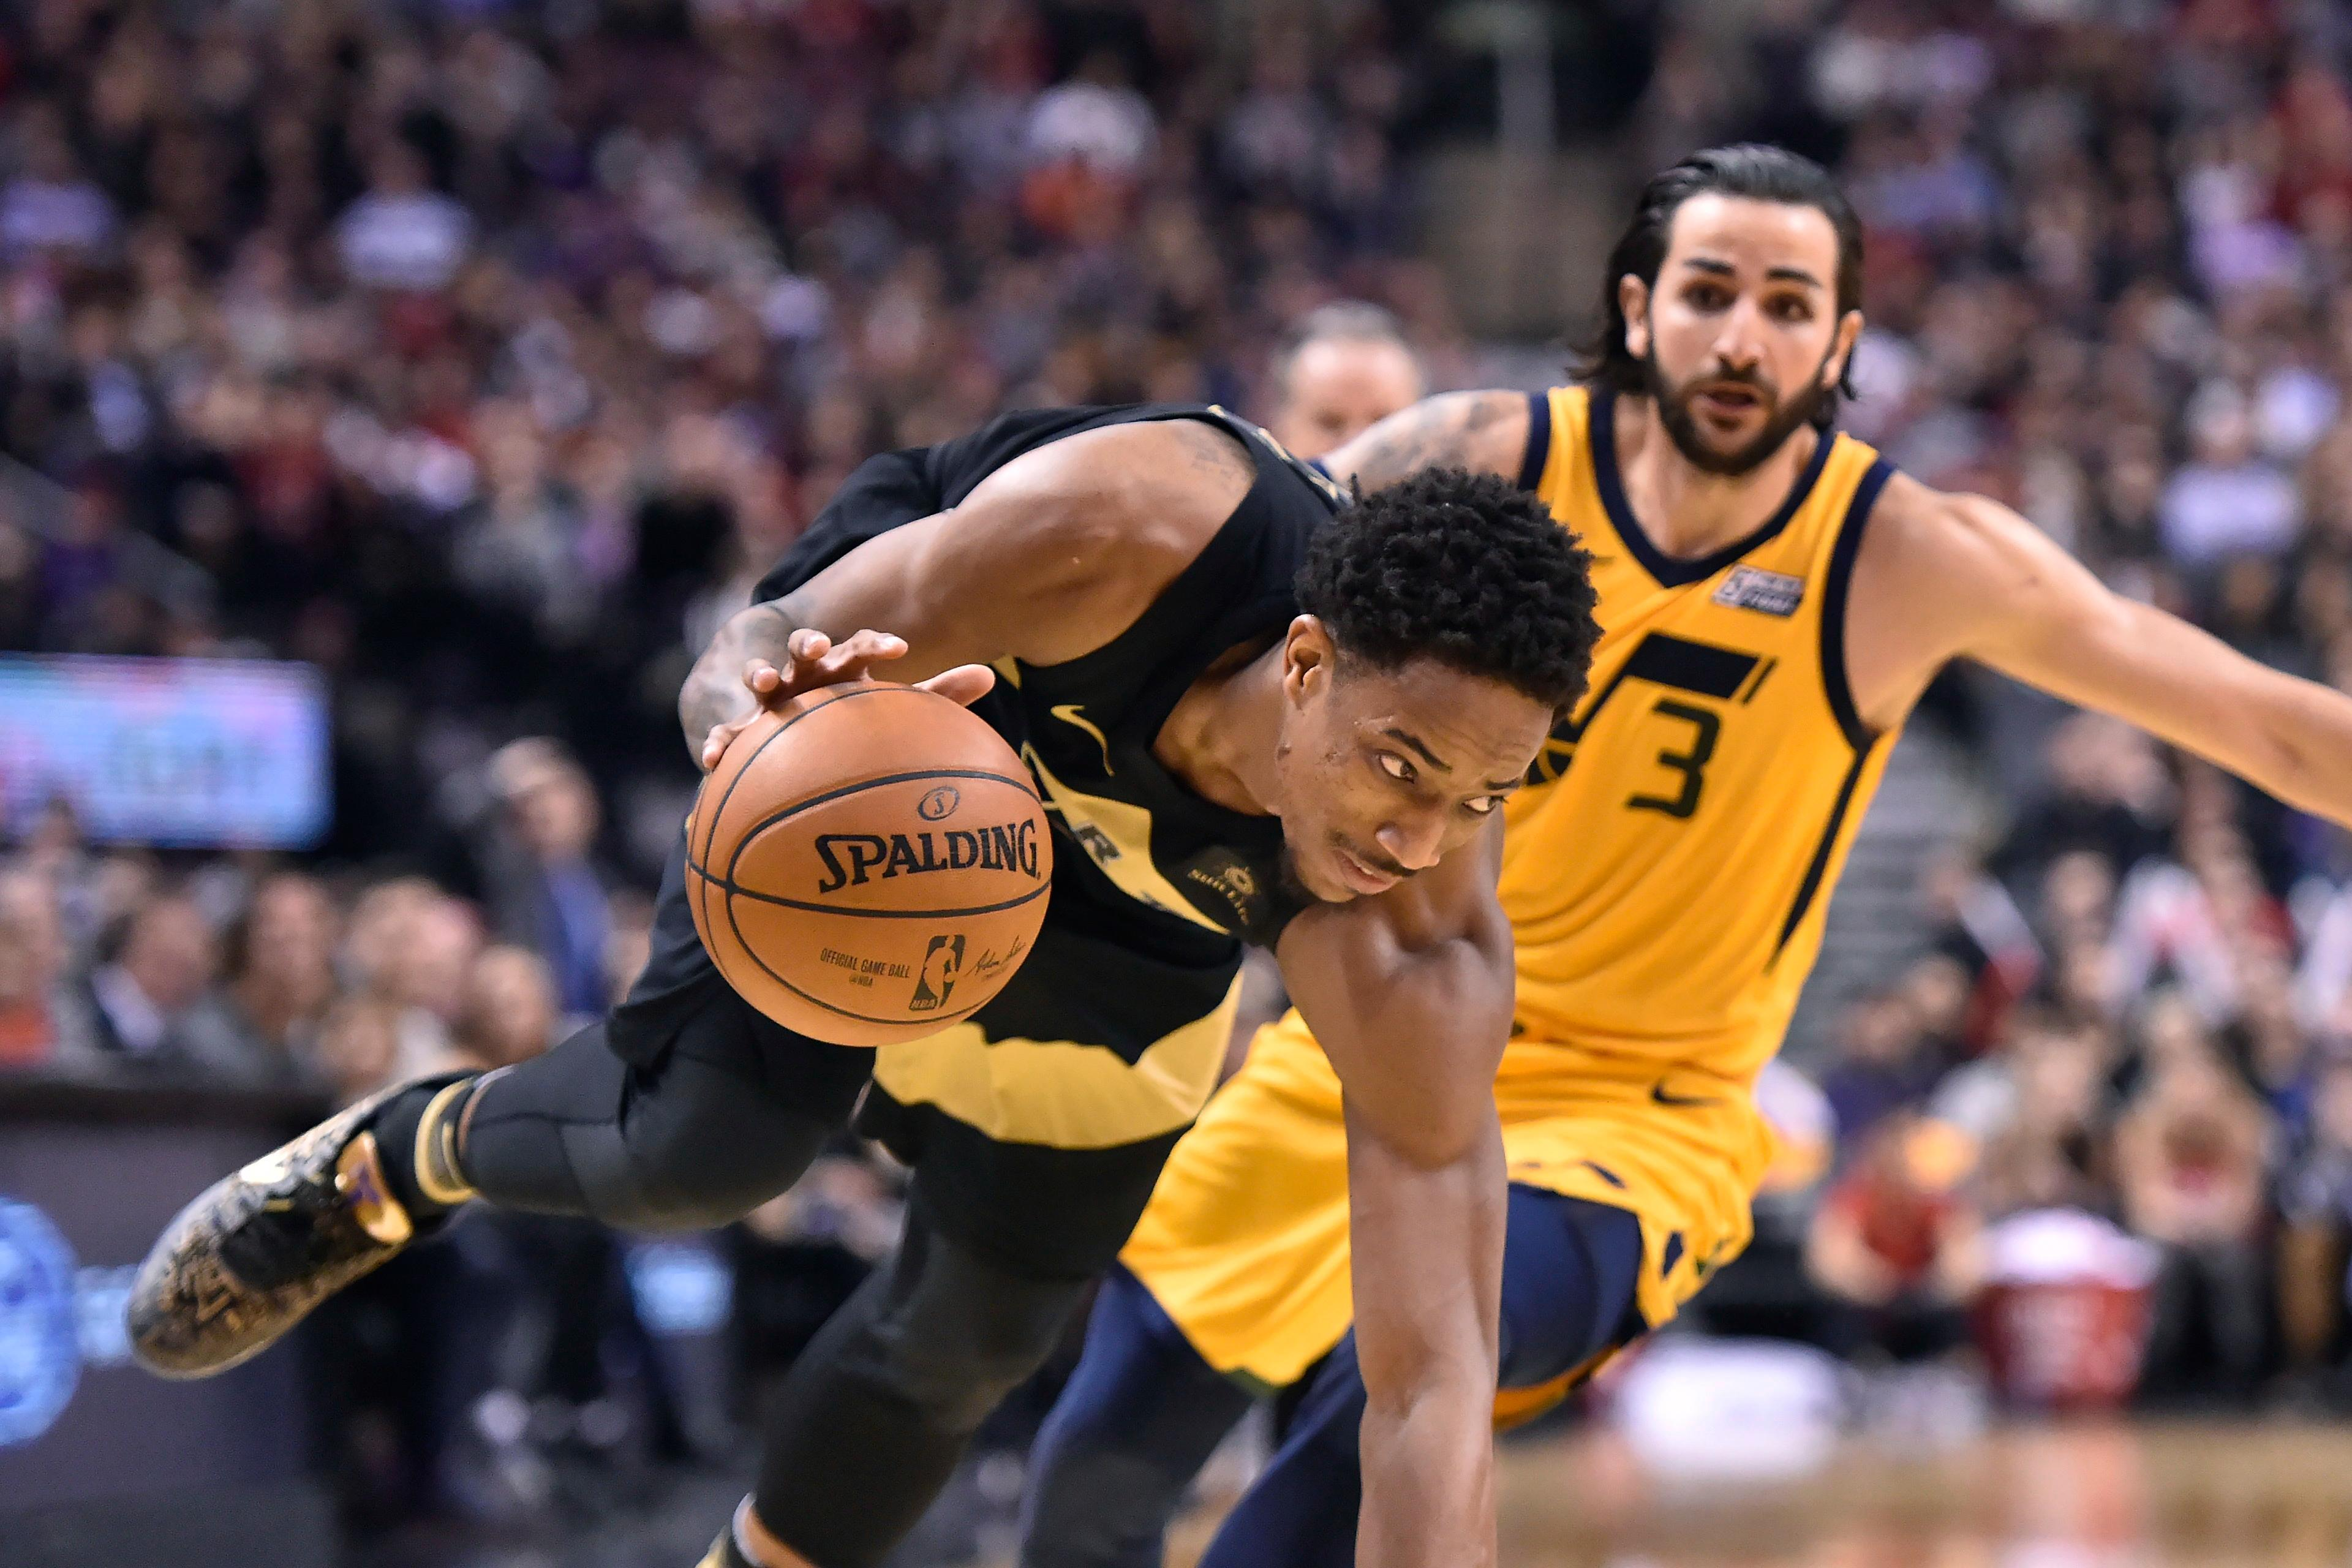 Toronto Raptors guard DeMar DeRozan drives around Utah Jazz guard Ricky Rubio (3) during the second half of an NBA basketball game Friday, Jan. 26, 2018, in Toronto. (Frank Gunn/The Canadian Press via AP)